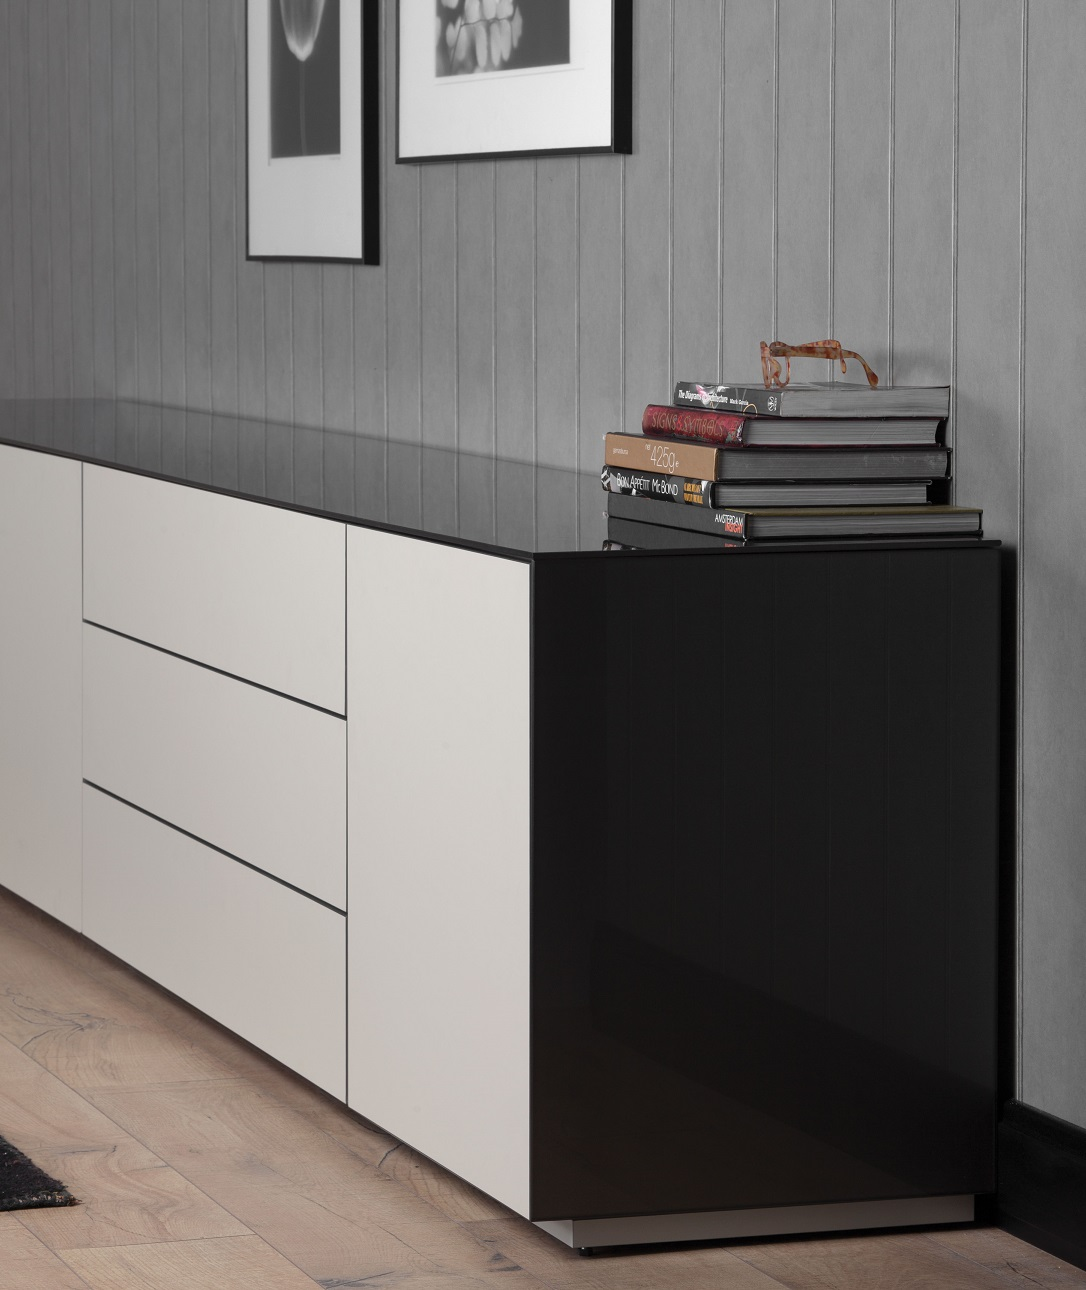 kommode sonorous elements sideboard kombination sb k8 b 300cm h sideboard schweiz. Black Bedroom Furniture Sets. Home Design Ideas